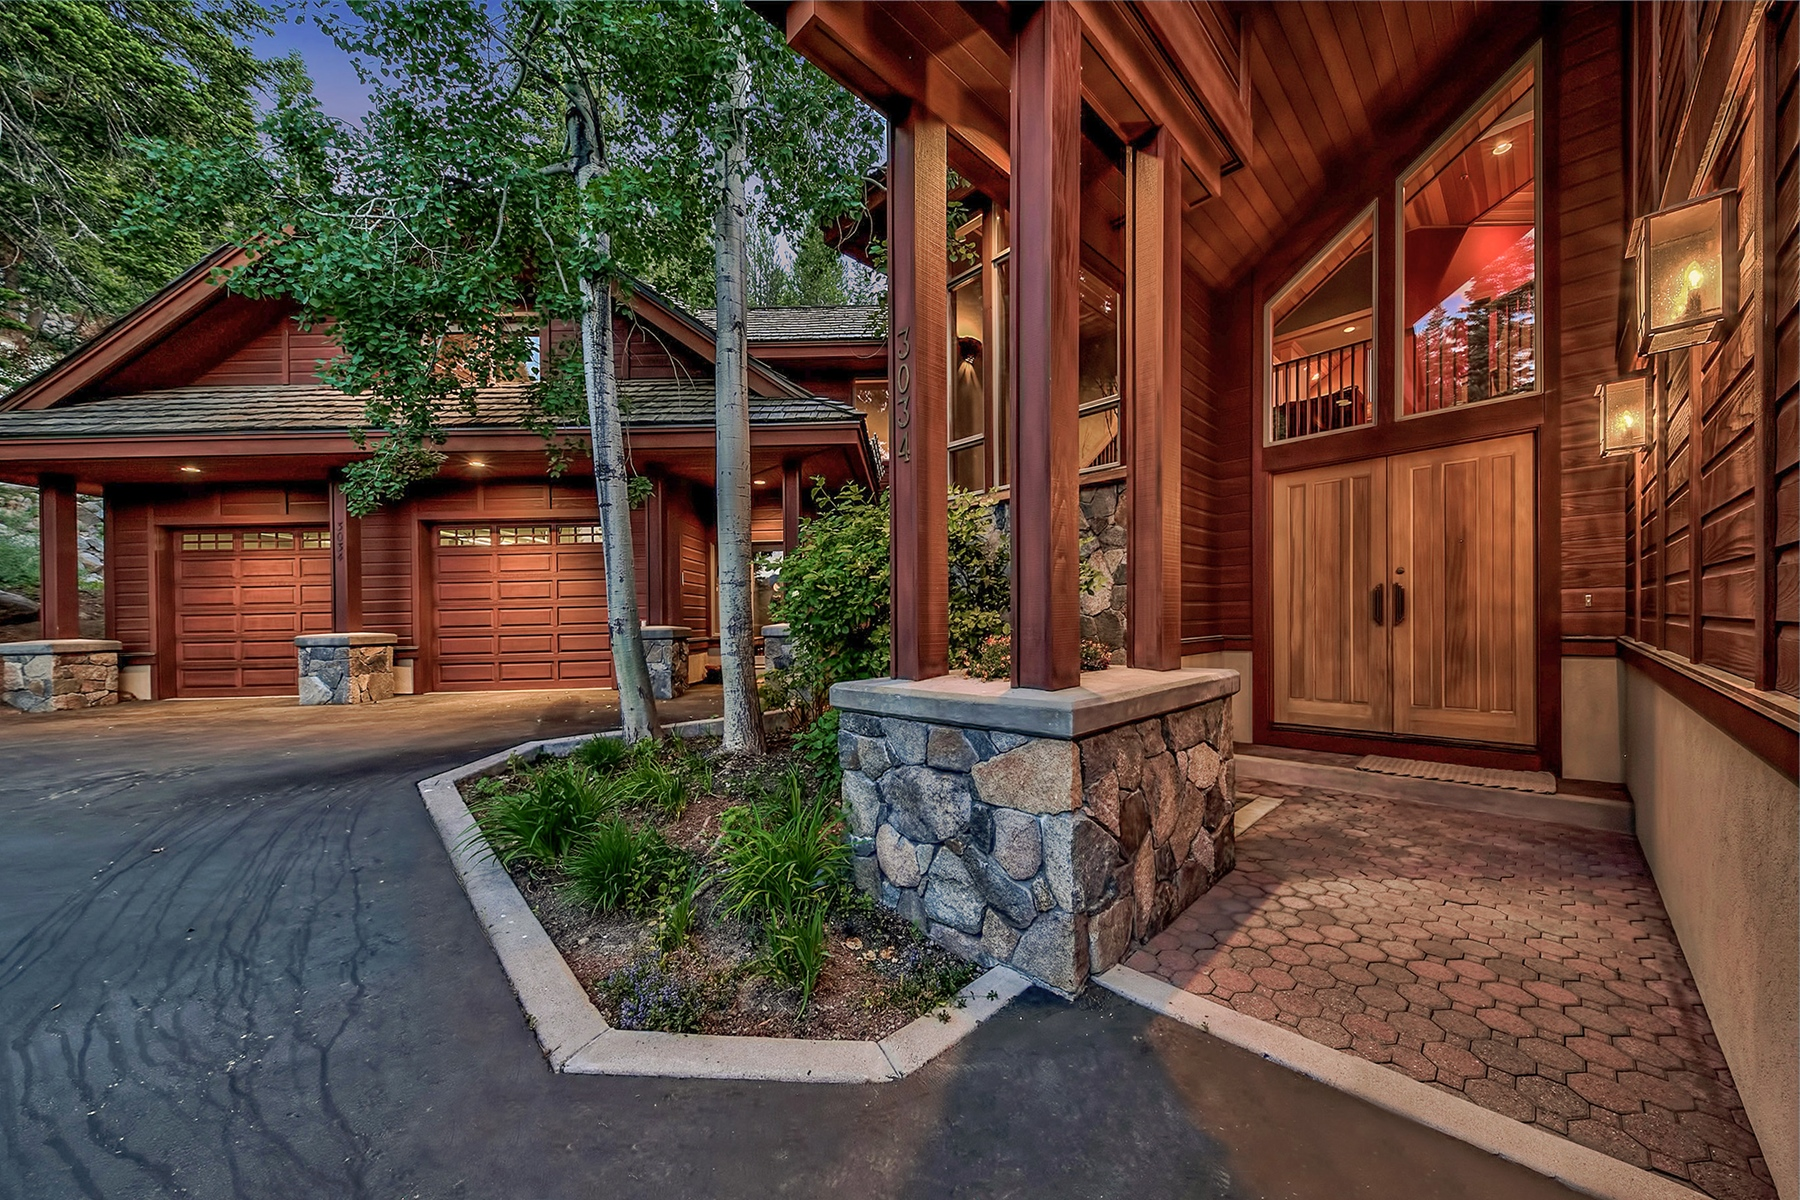 Additional photo for property listing at 3034 Mountain Links Road, Olympic Valley, CA 96146 3034 Mountain Links Road Olympic Valley, California 96146 United States